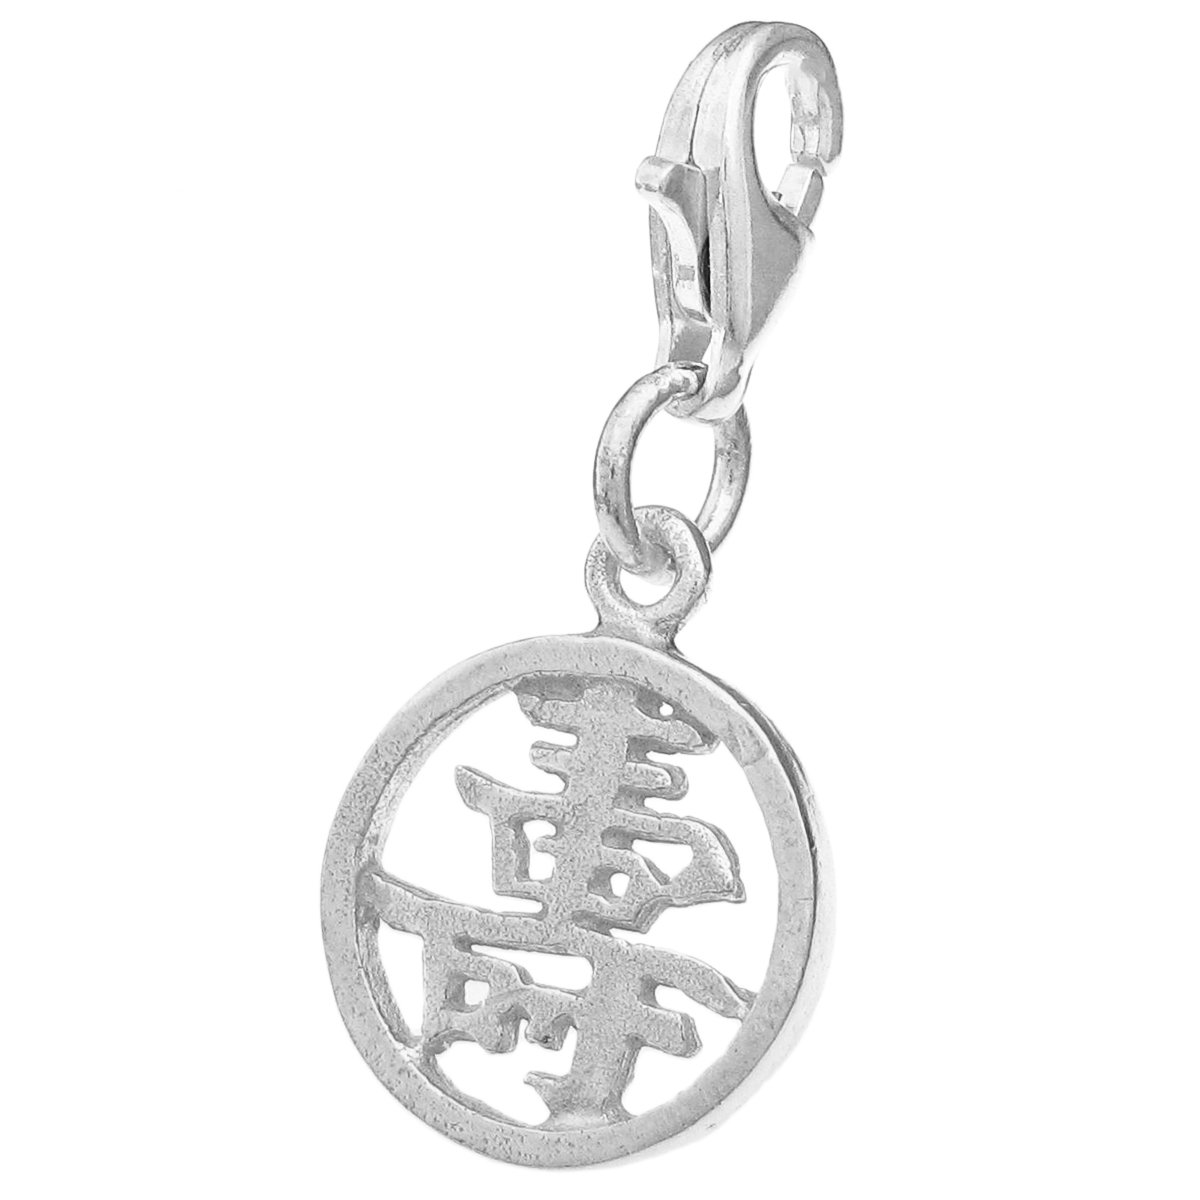 .925 Sterling Silver Chinese Character Word Long Life Dangle Bead Pendant Clasp European Lobster Trigger Clip On Charm Dreambell TS0002W-LX1